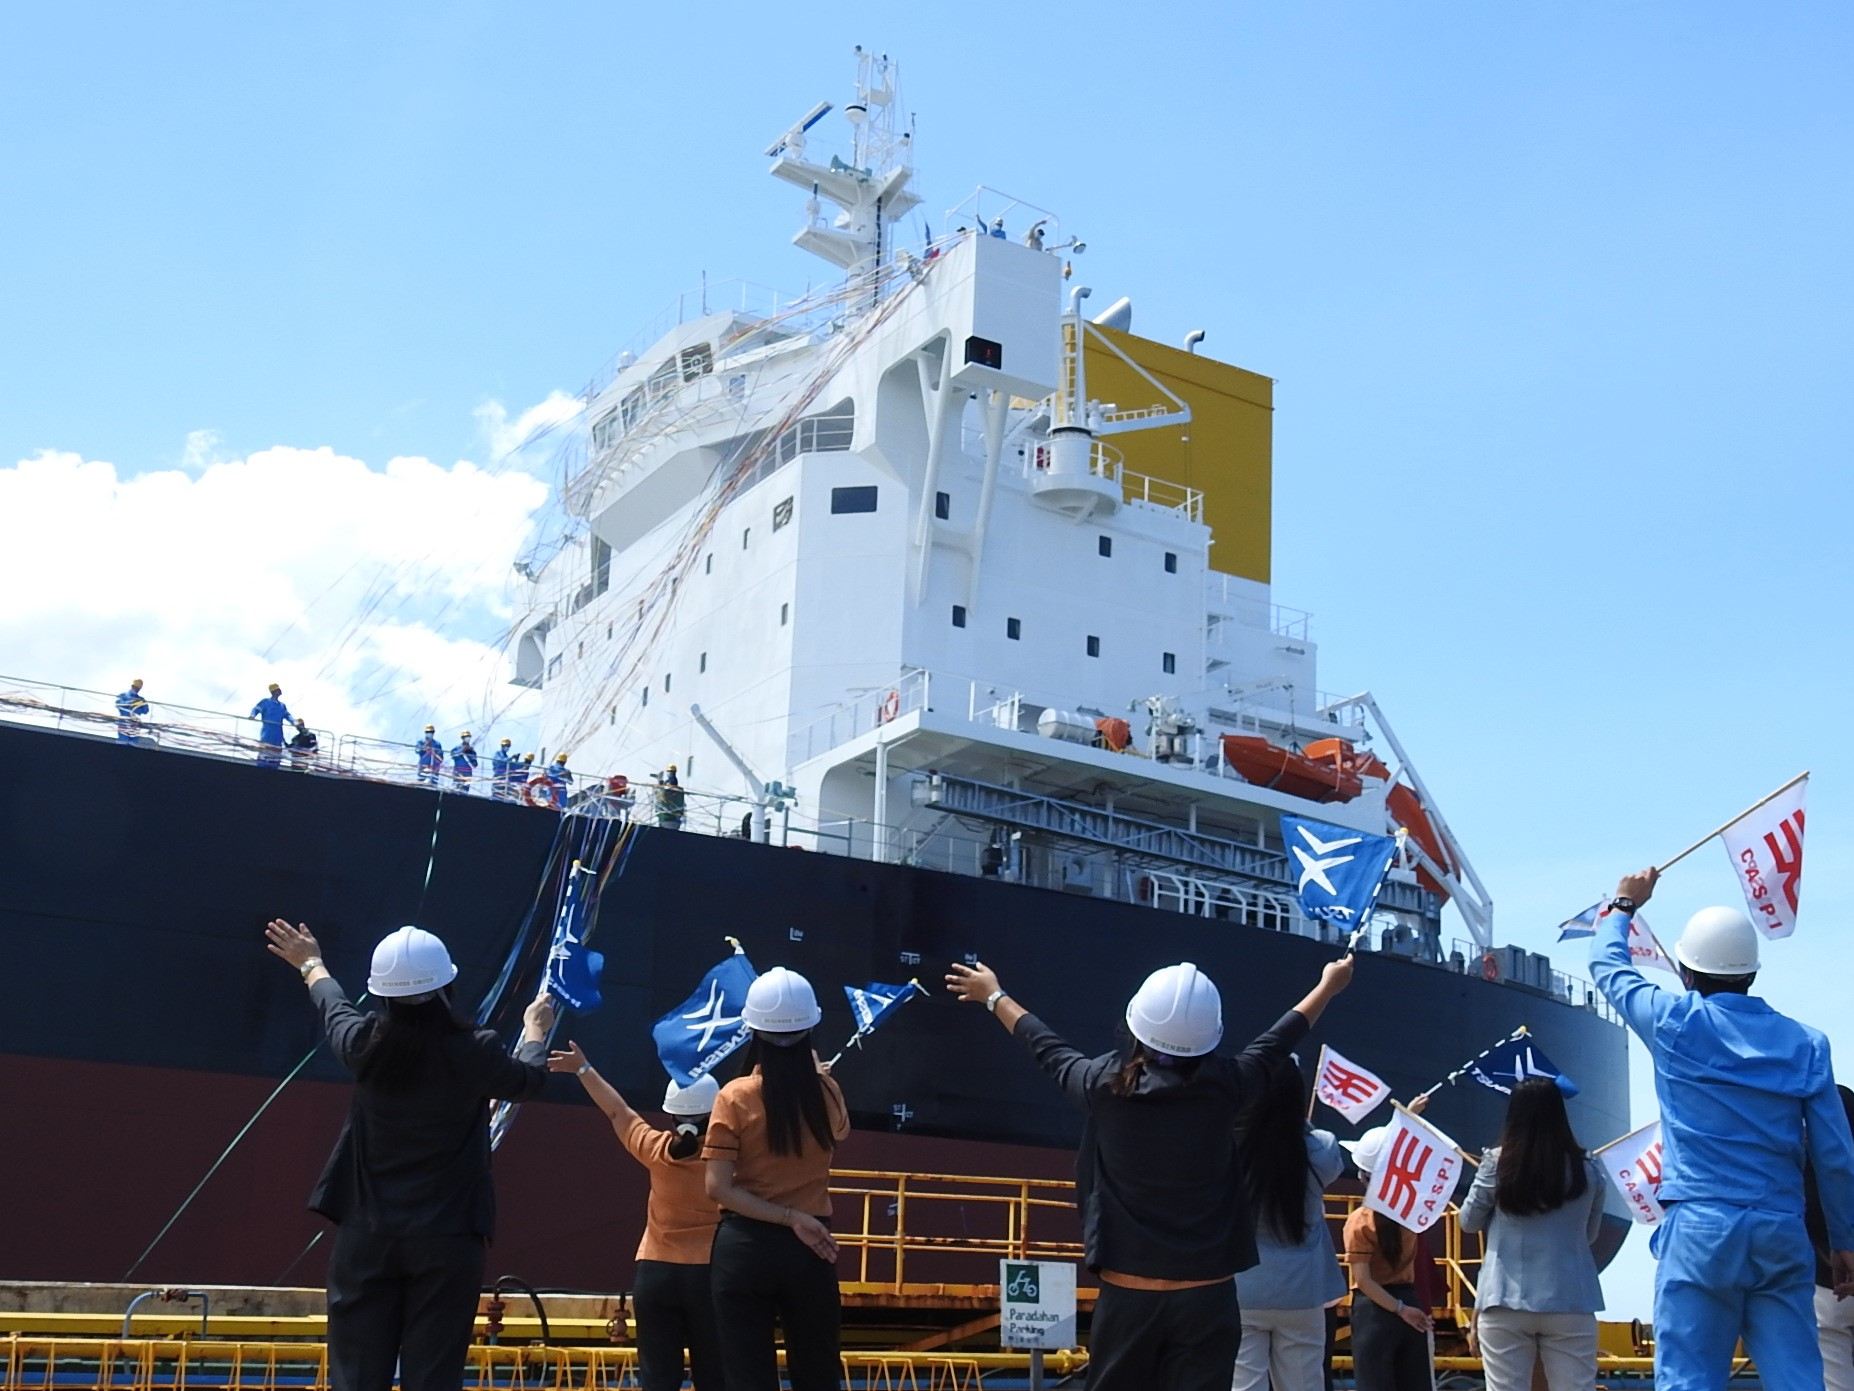 Sending off the completed ship